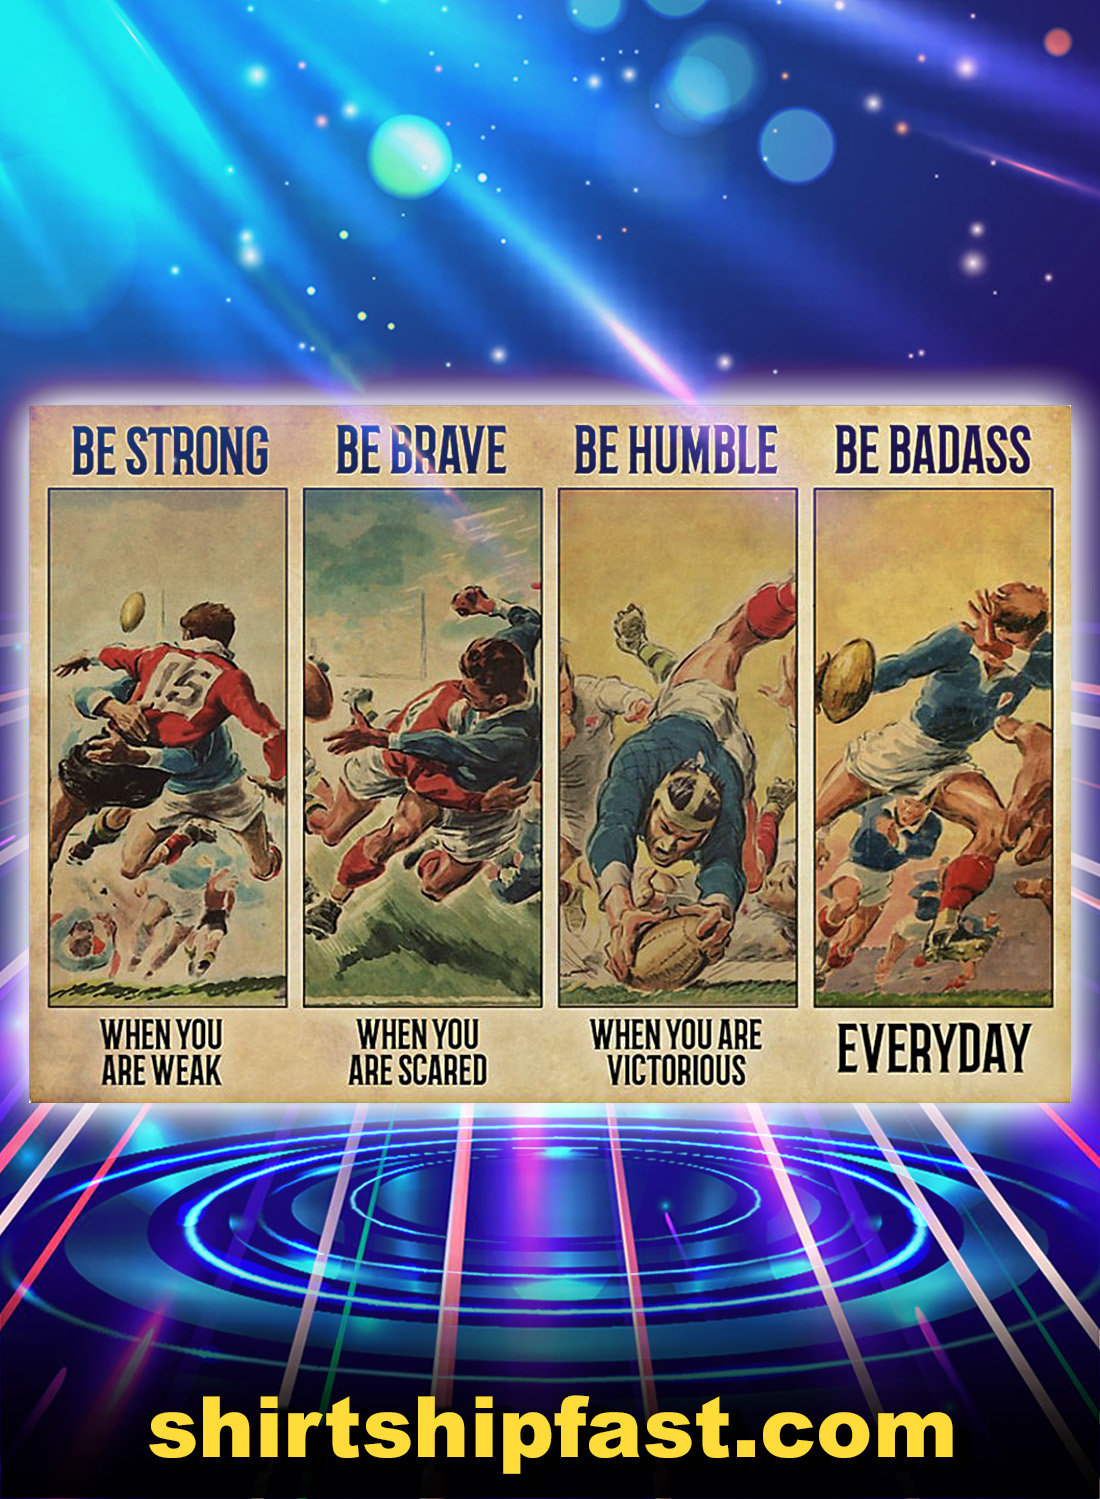 Rugby be strong be brave be humble be badass poster - A4